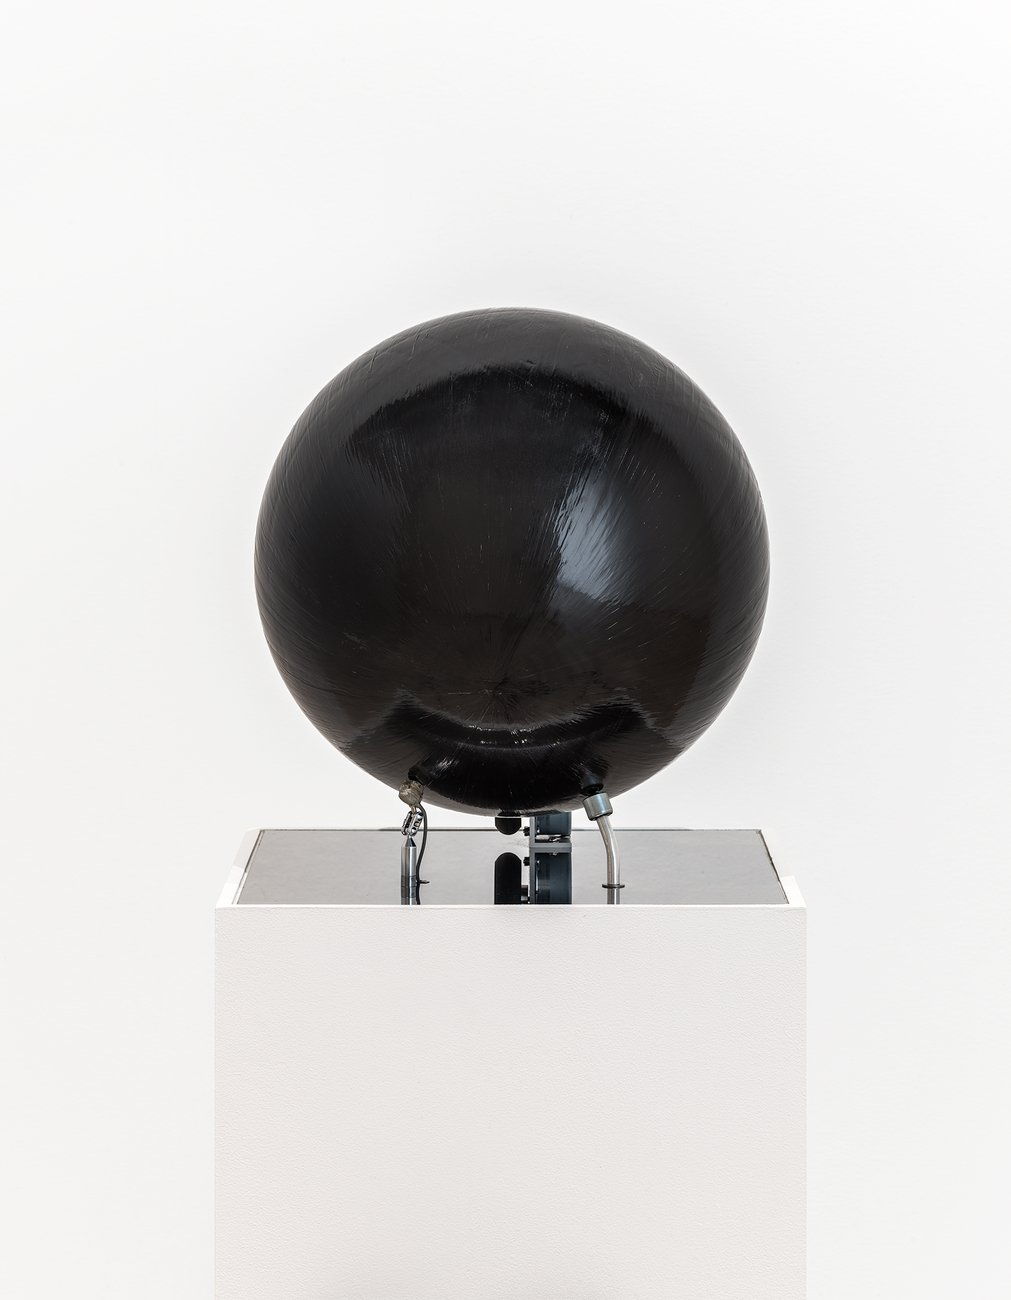 A sphere in a gallery, Yagi, Soundtracks